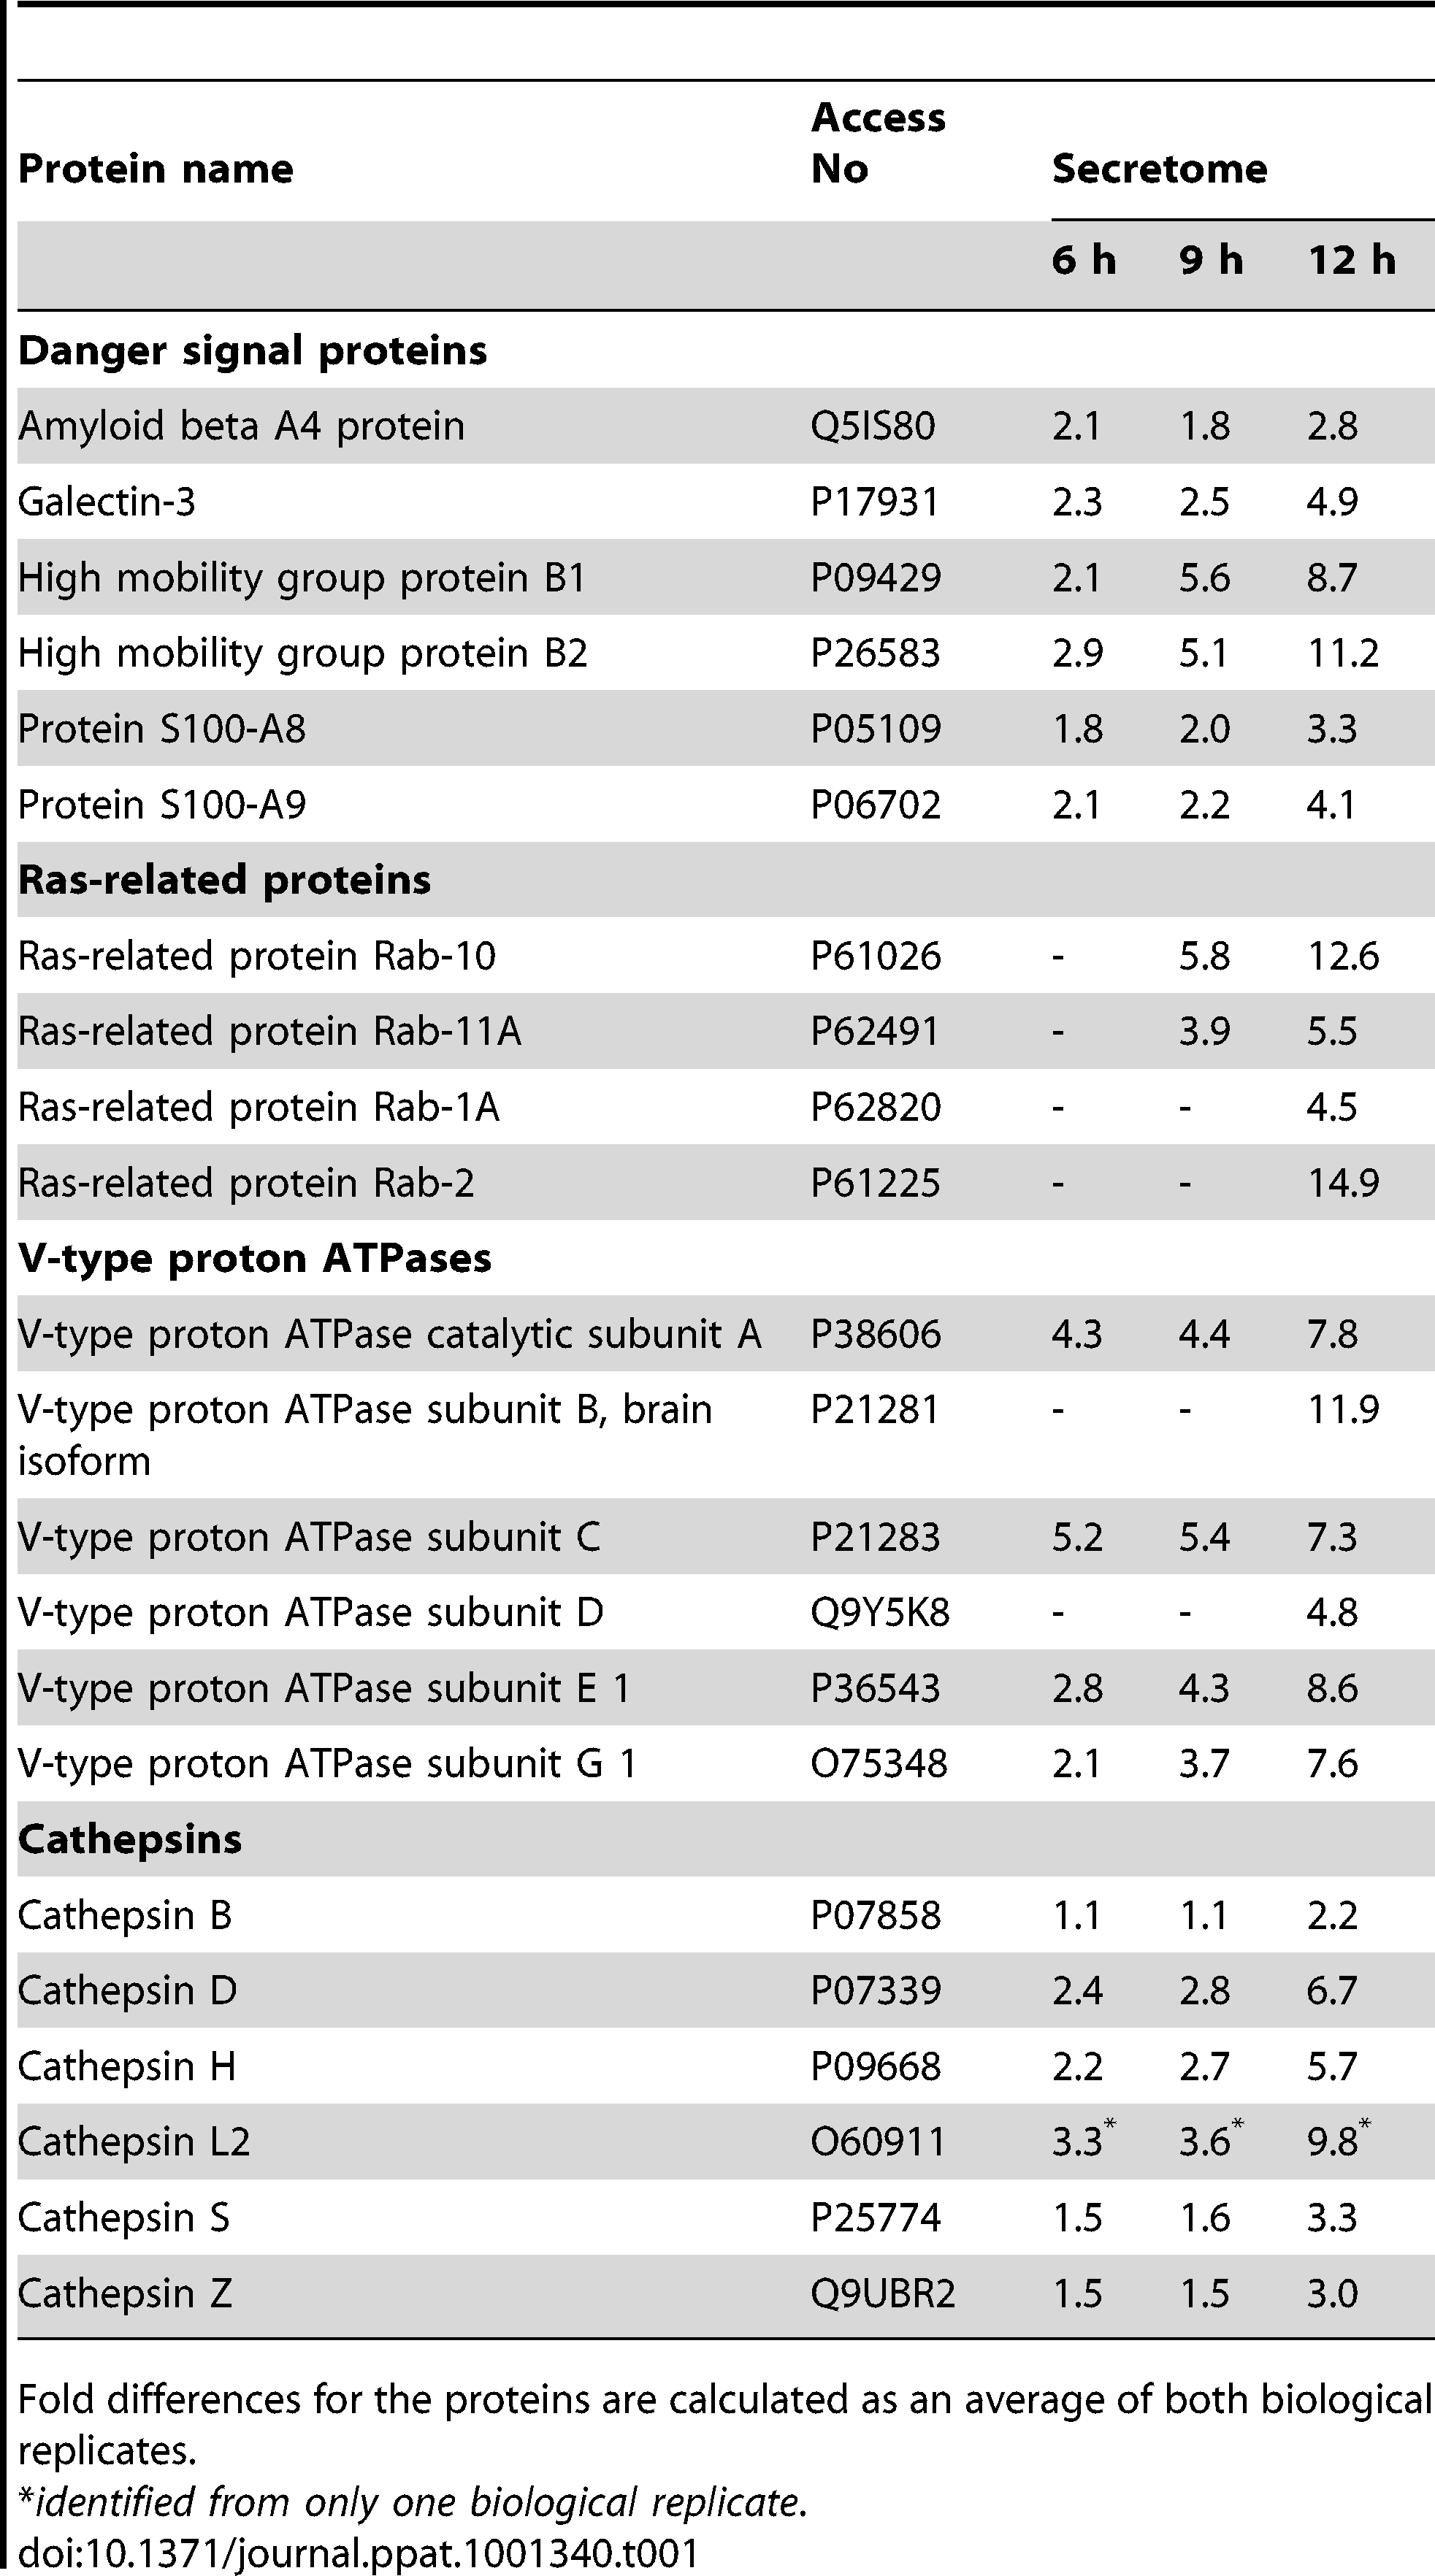 iTRAQ data reveals increased secretion of several danger signal proteins, ras-related proteins, V-type proton ATPases and cathepsins in the influenza A virus infected macrophages.